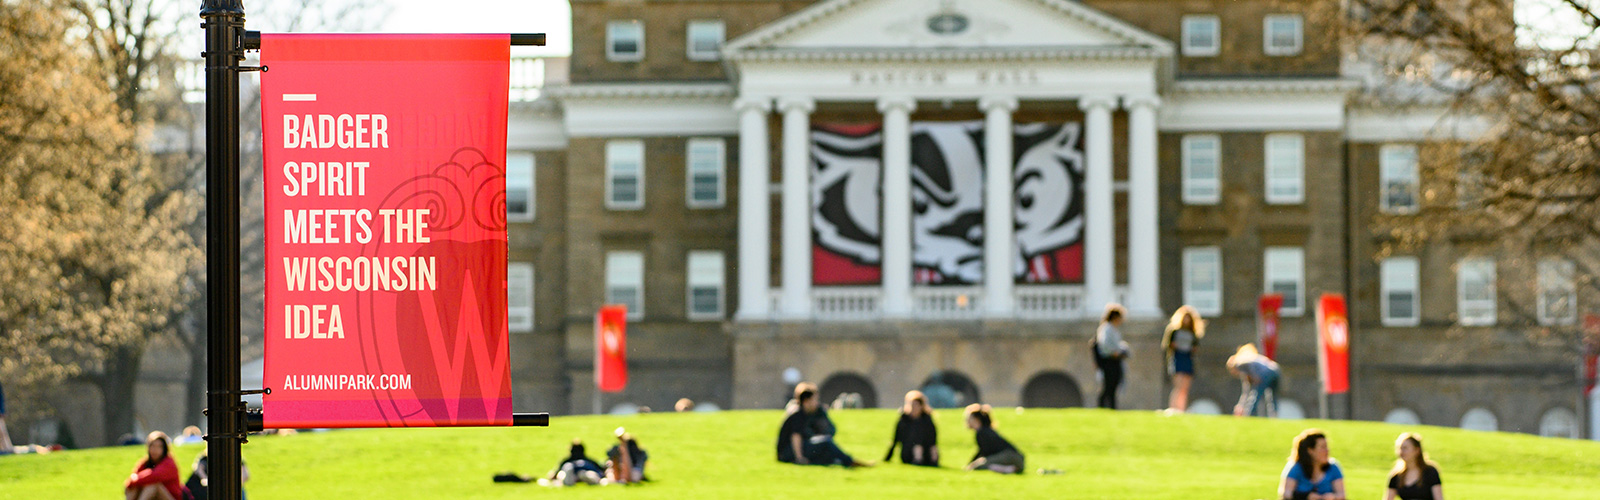 Students enjoy a warm spring day on Bascom Hill